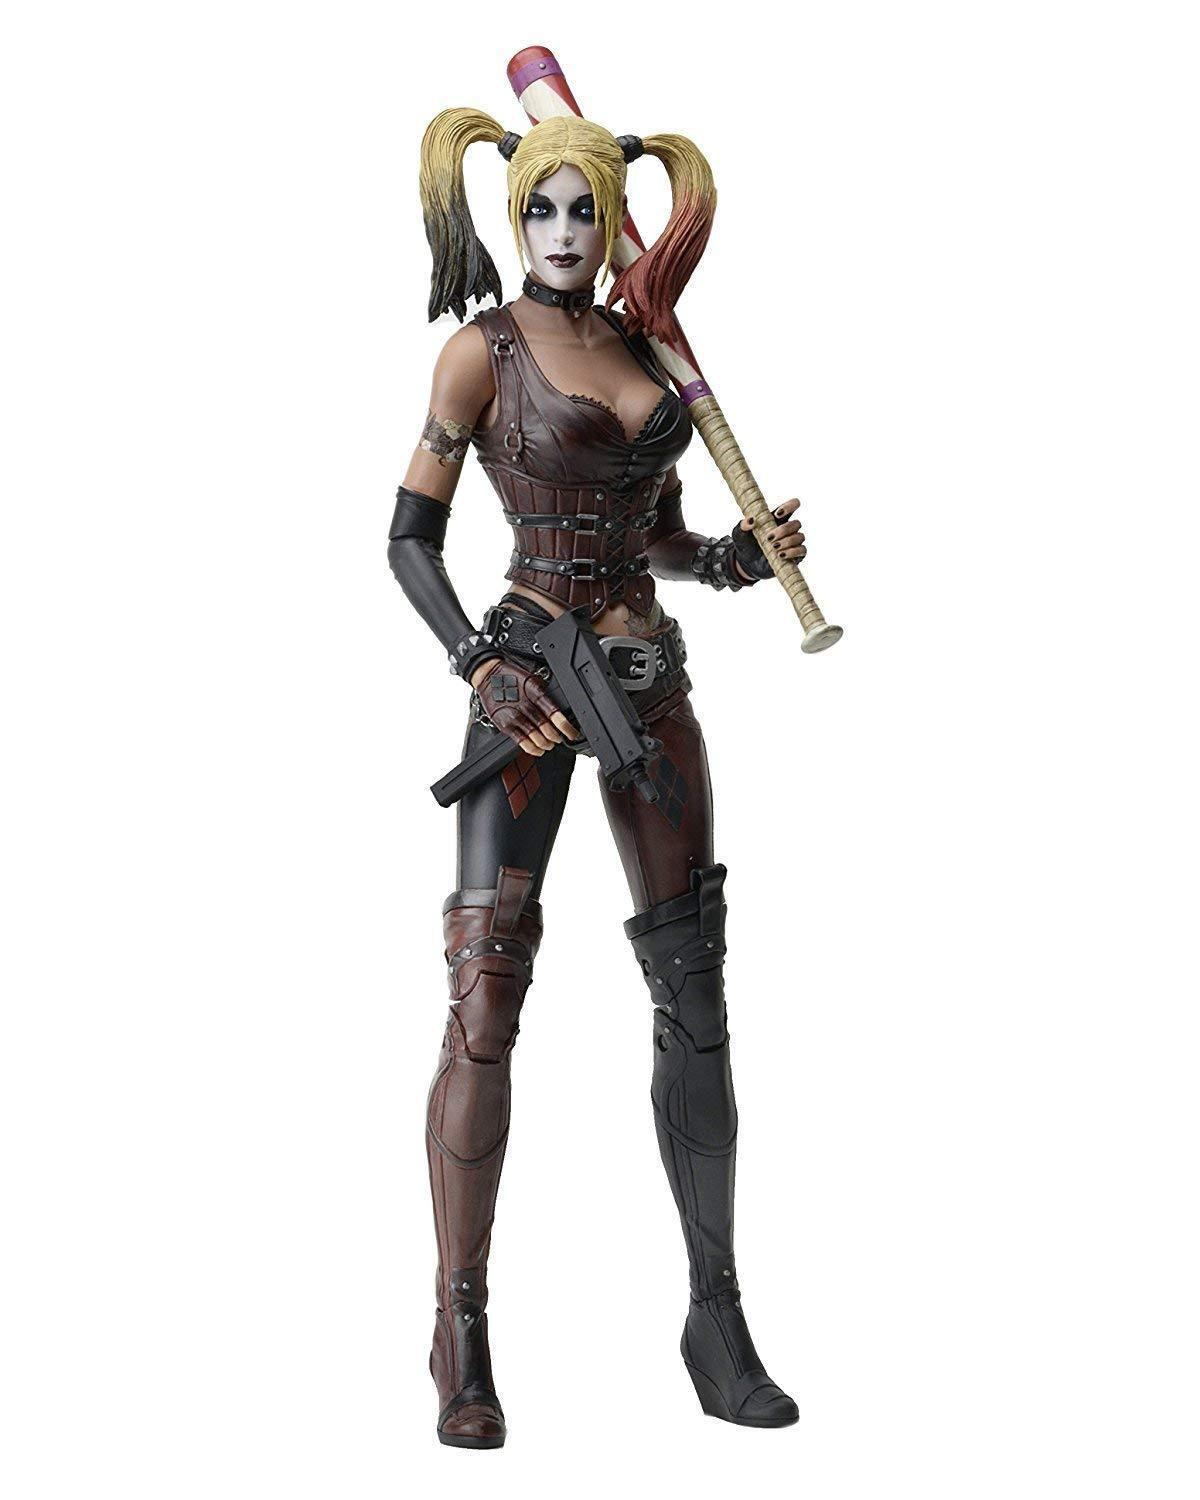 1 4 Scale Arkham City Harley Quinn Figure by Neca